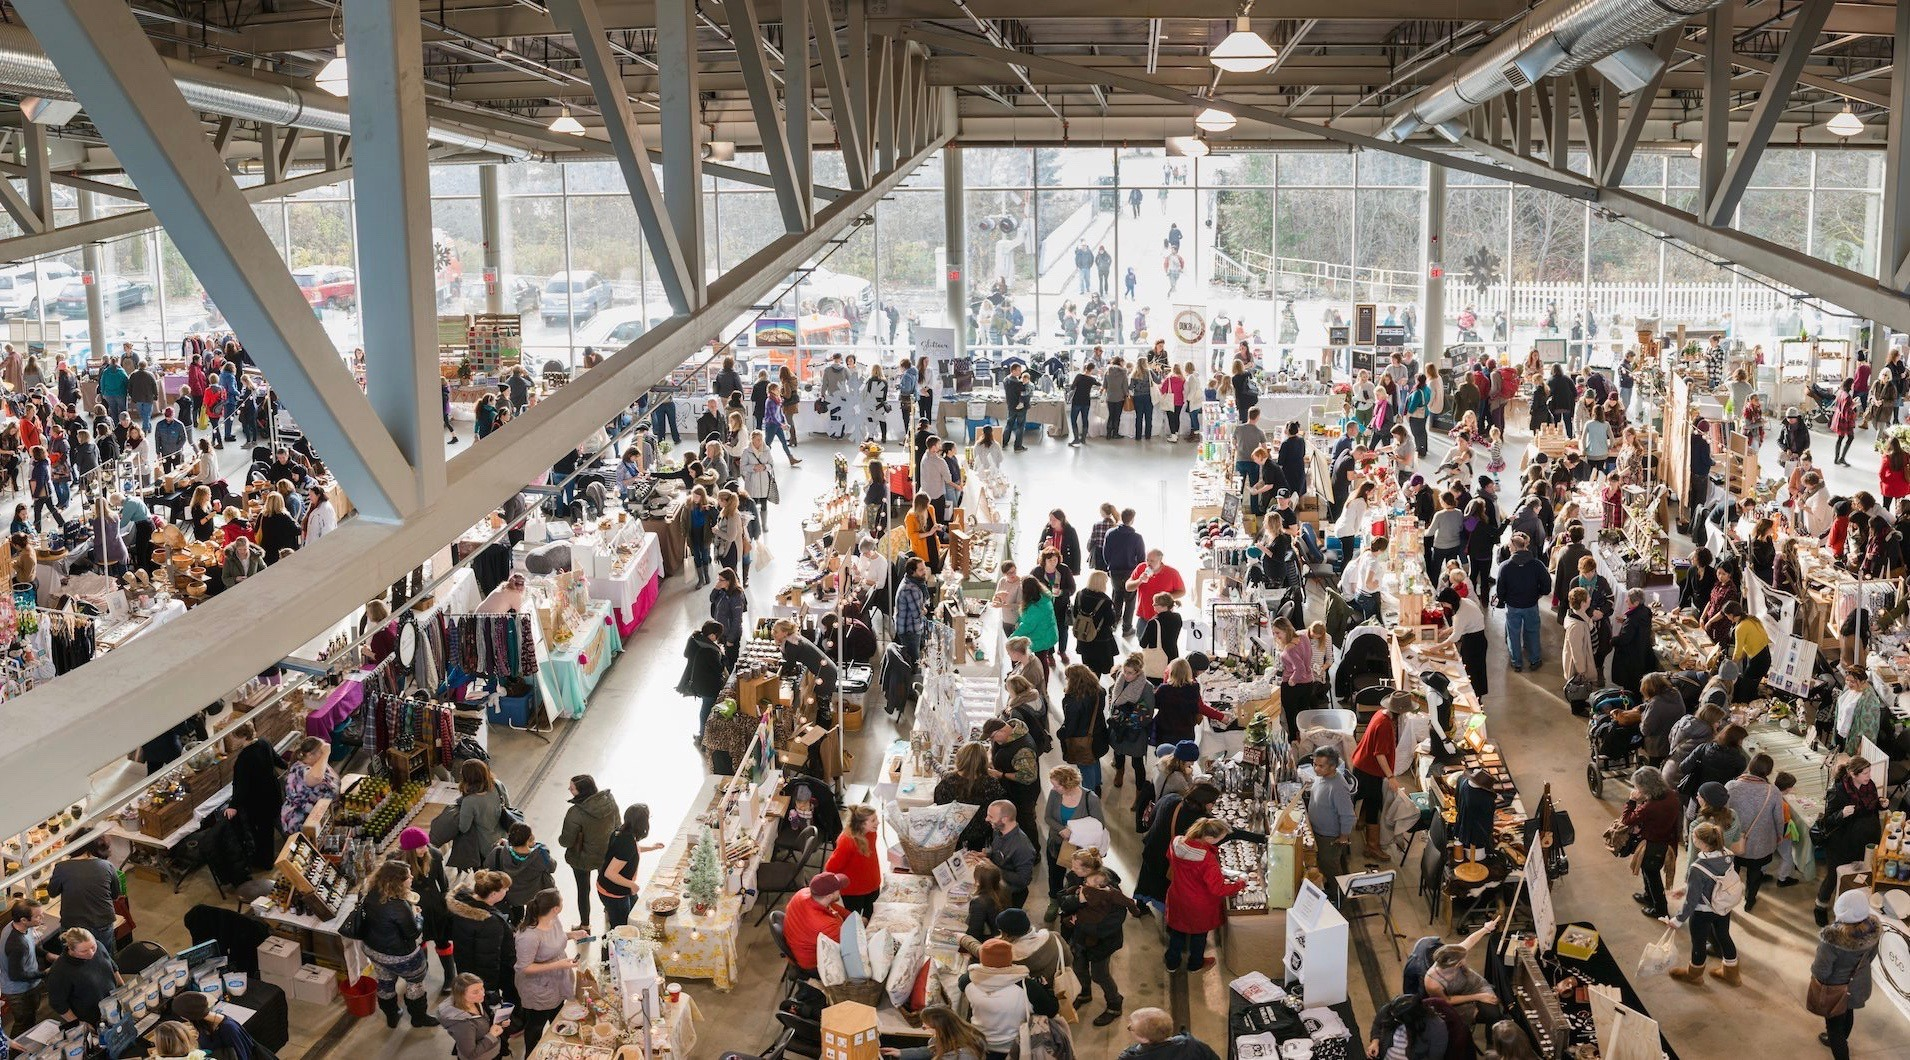 25 Christmas markets and holiday craft fairs in Metro Vancouver